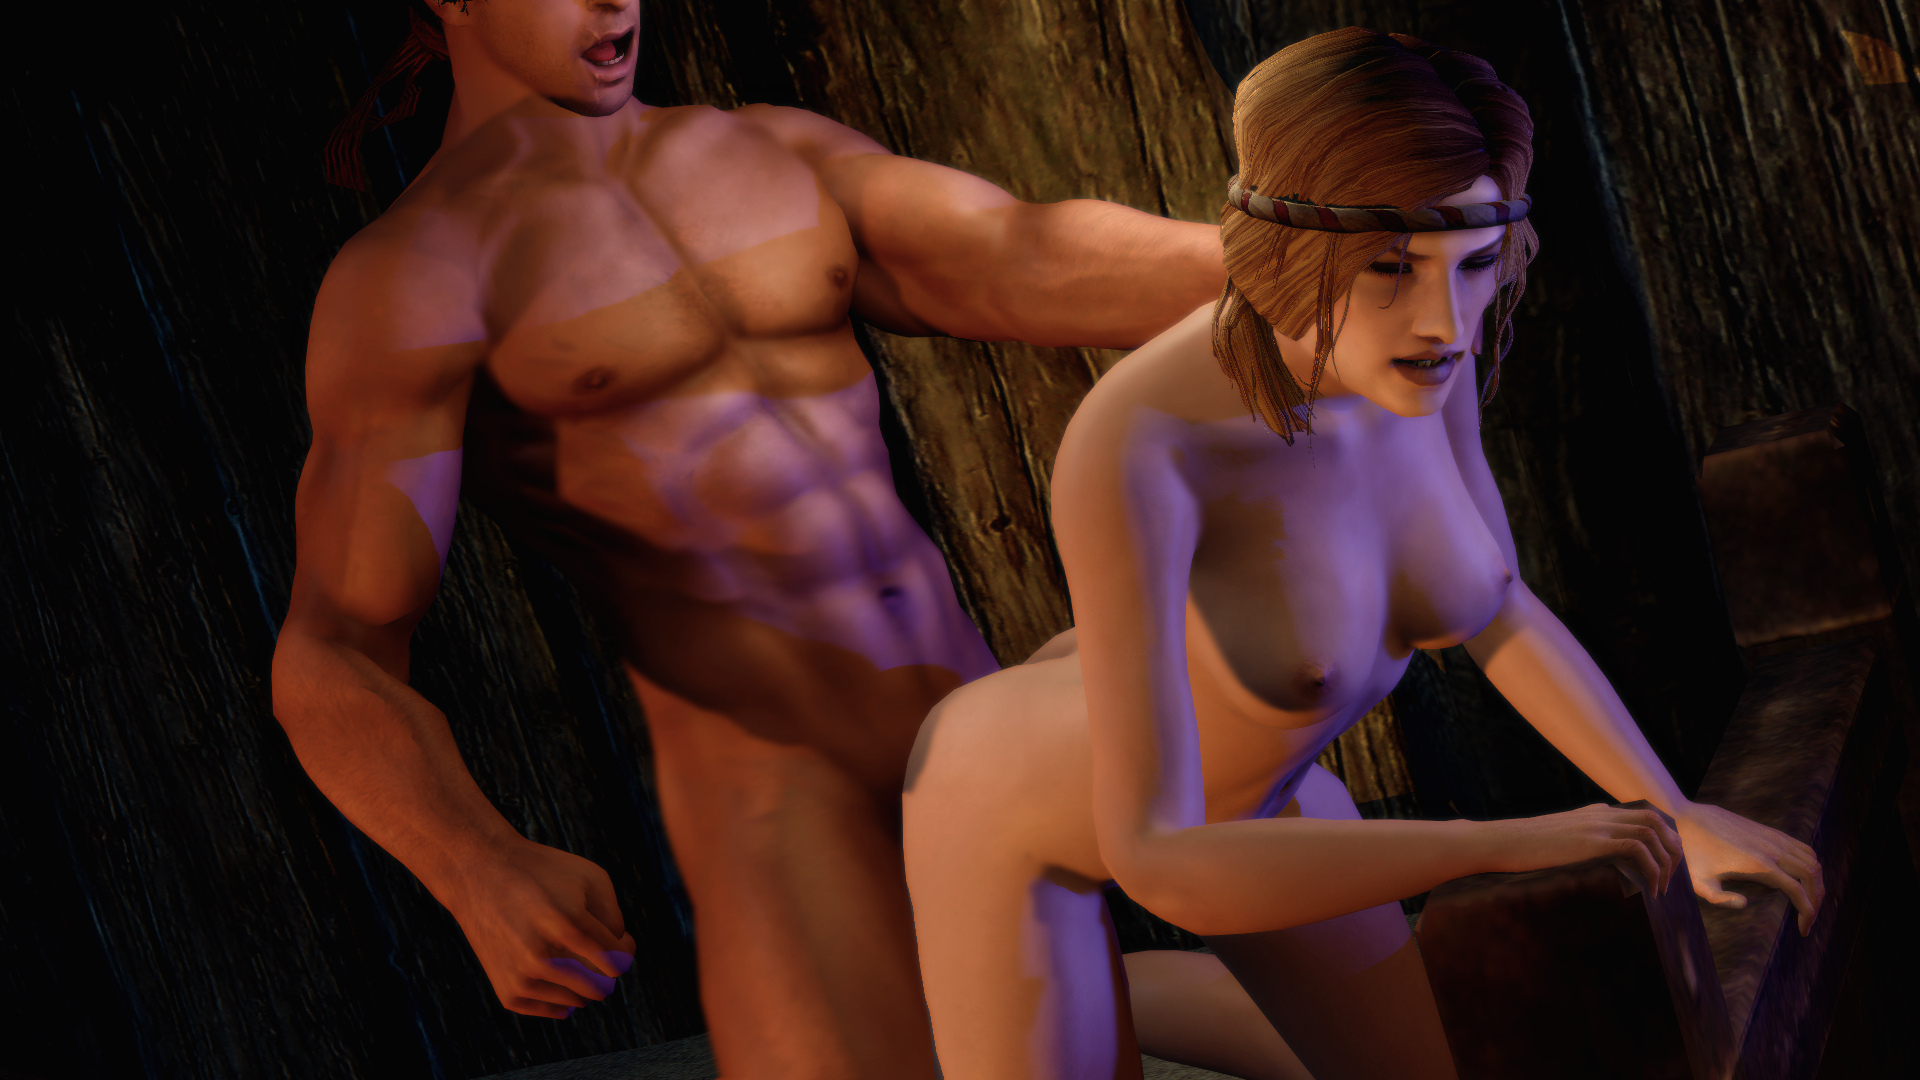 The witcher 2 xxx mods nude pictures